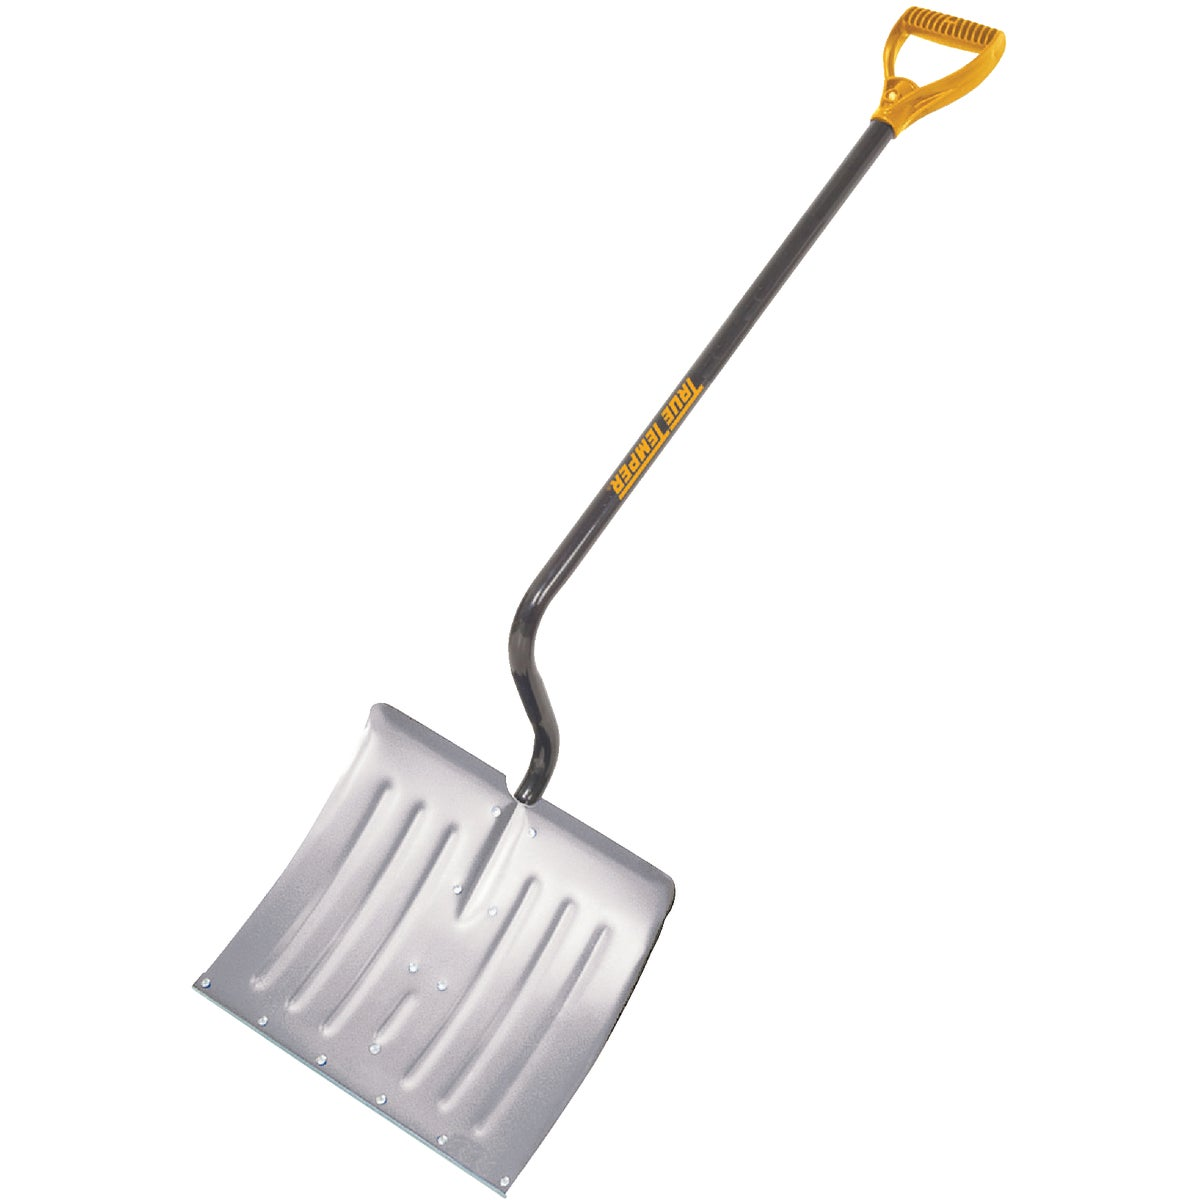 "18"" ALUMINUM SNOW SHOVEL - 1641200 by Ames True Temper"